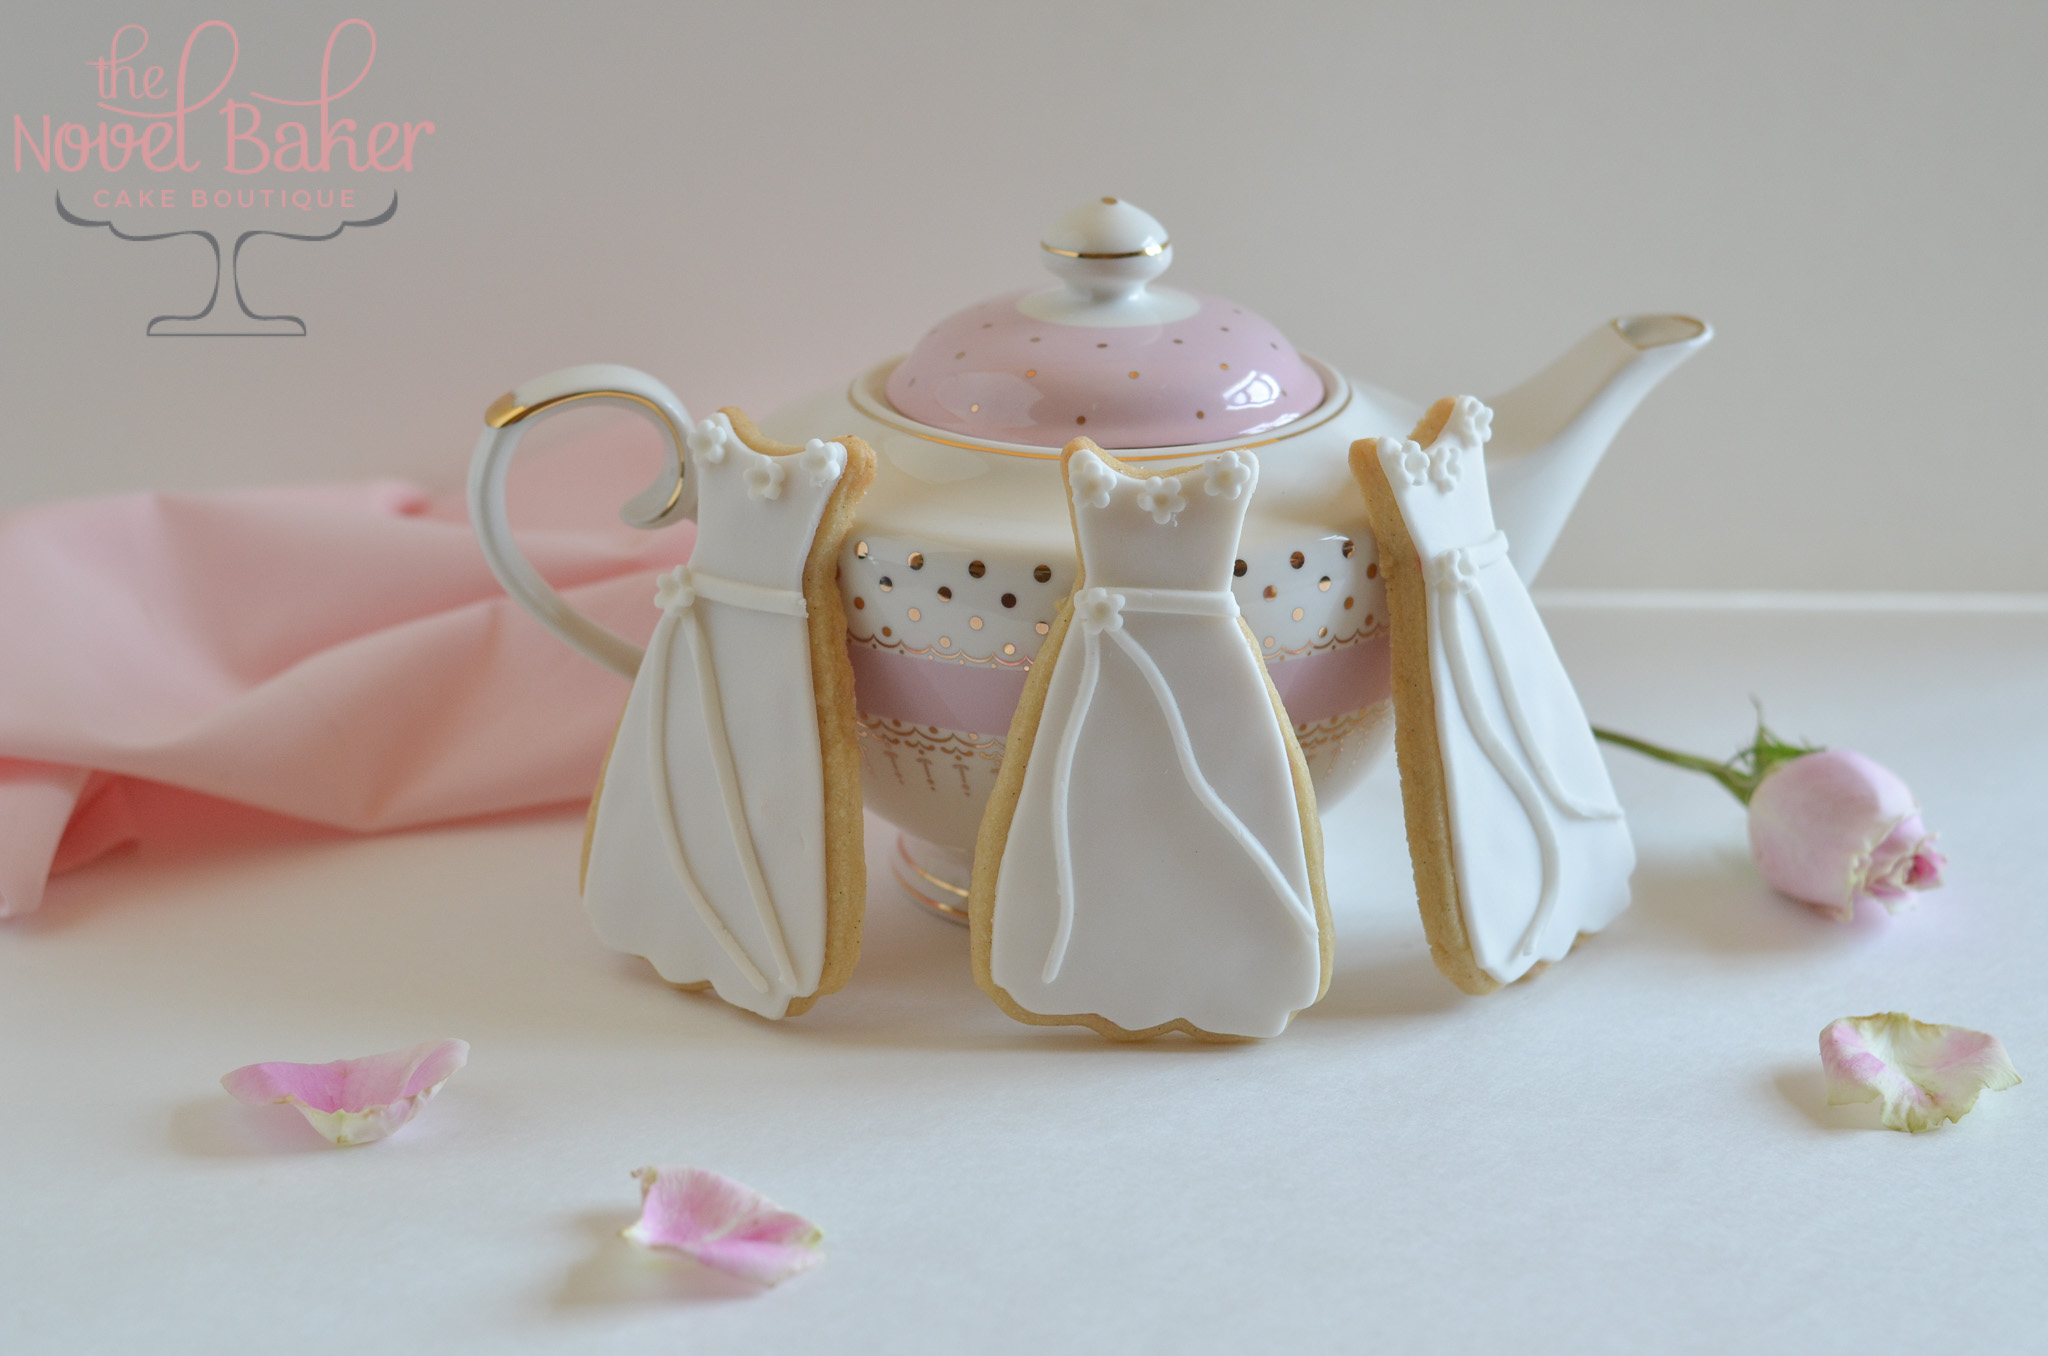 Shortbread cookies with white fondant dresses. Deliciously perfect for Bridal Shower Favors!